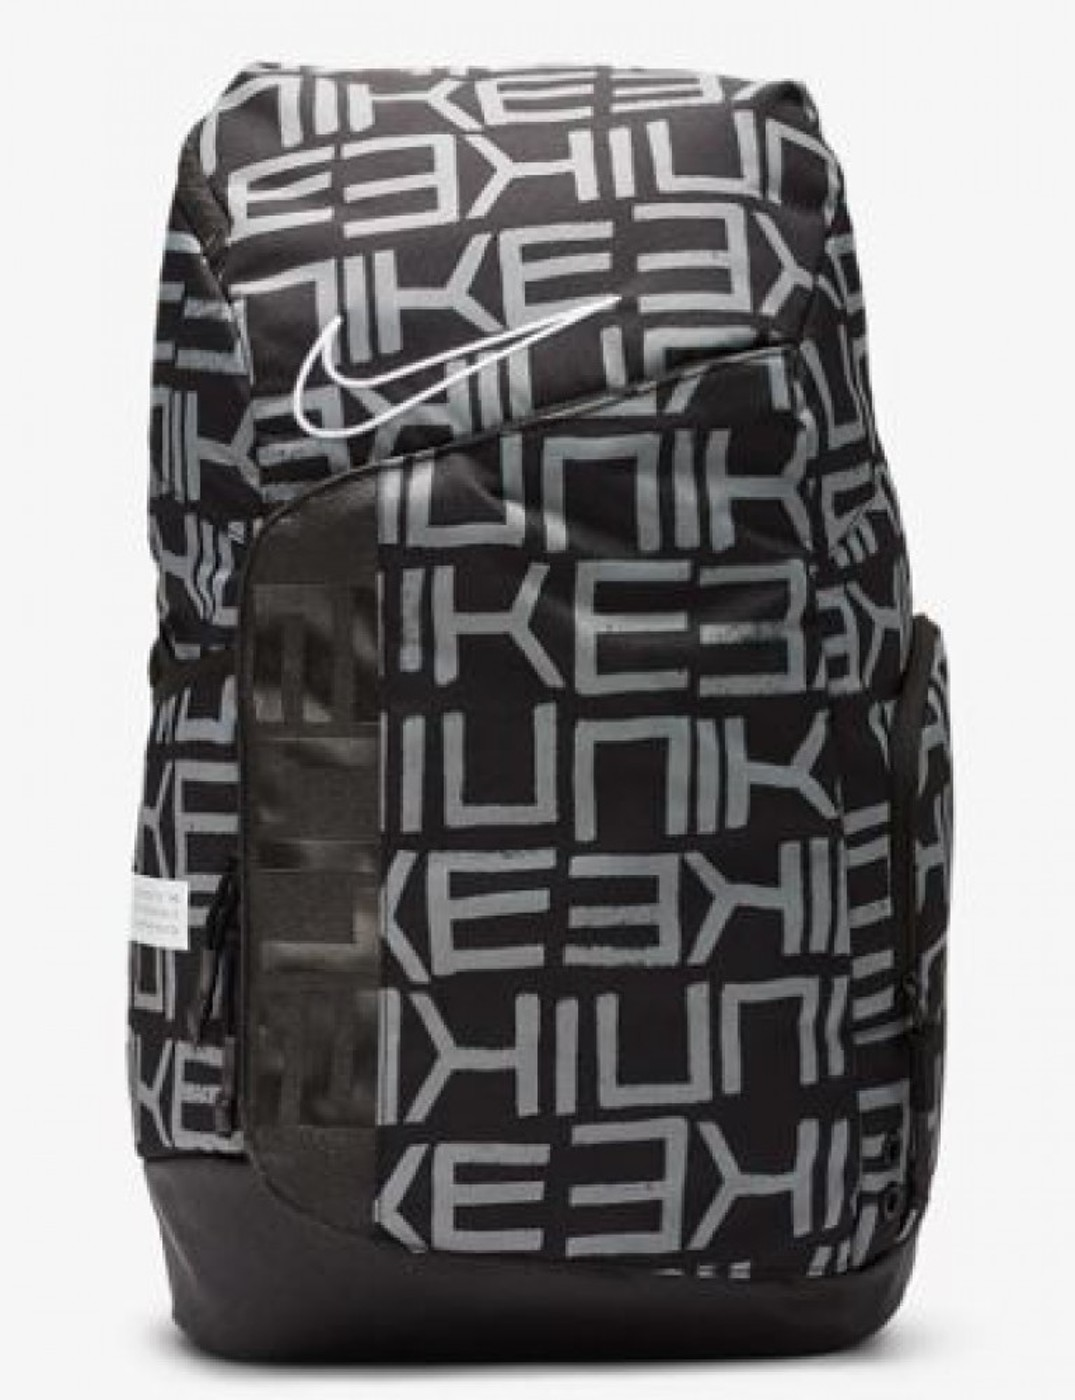 Nike Elite Pro Printed Basketb